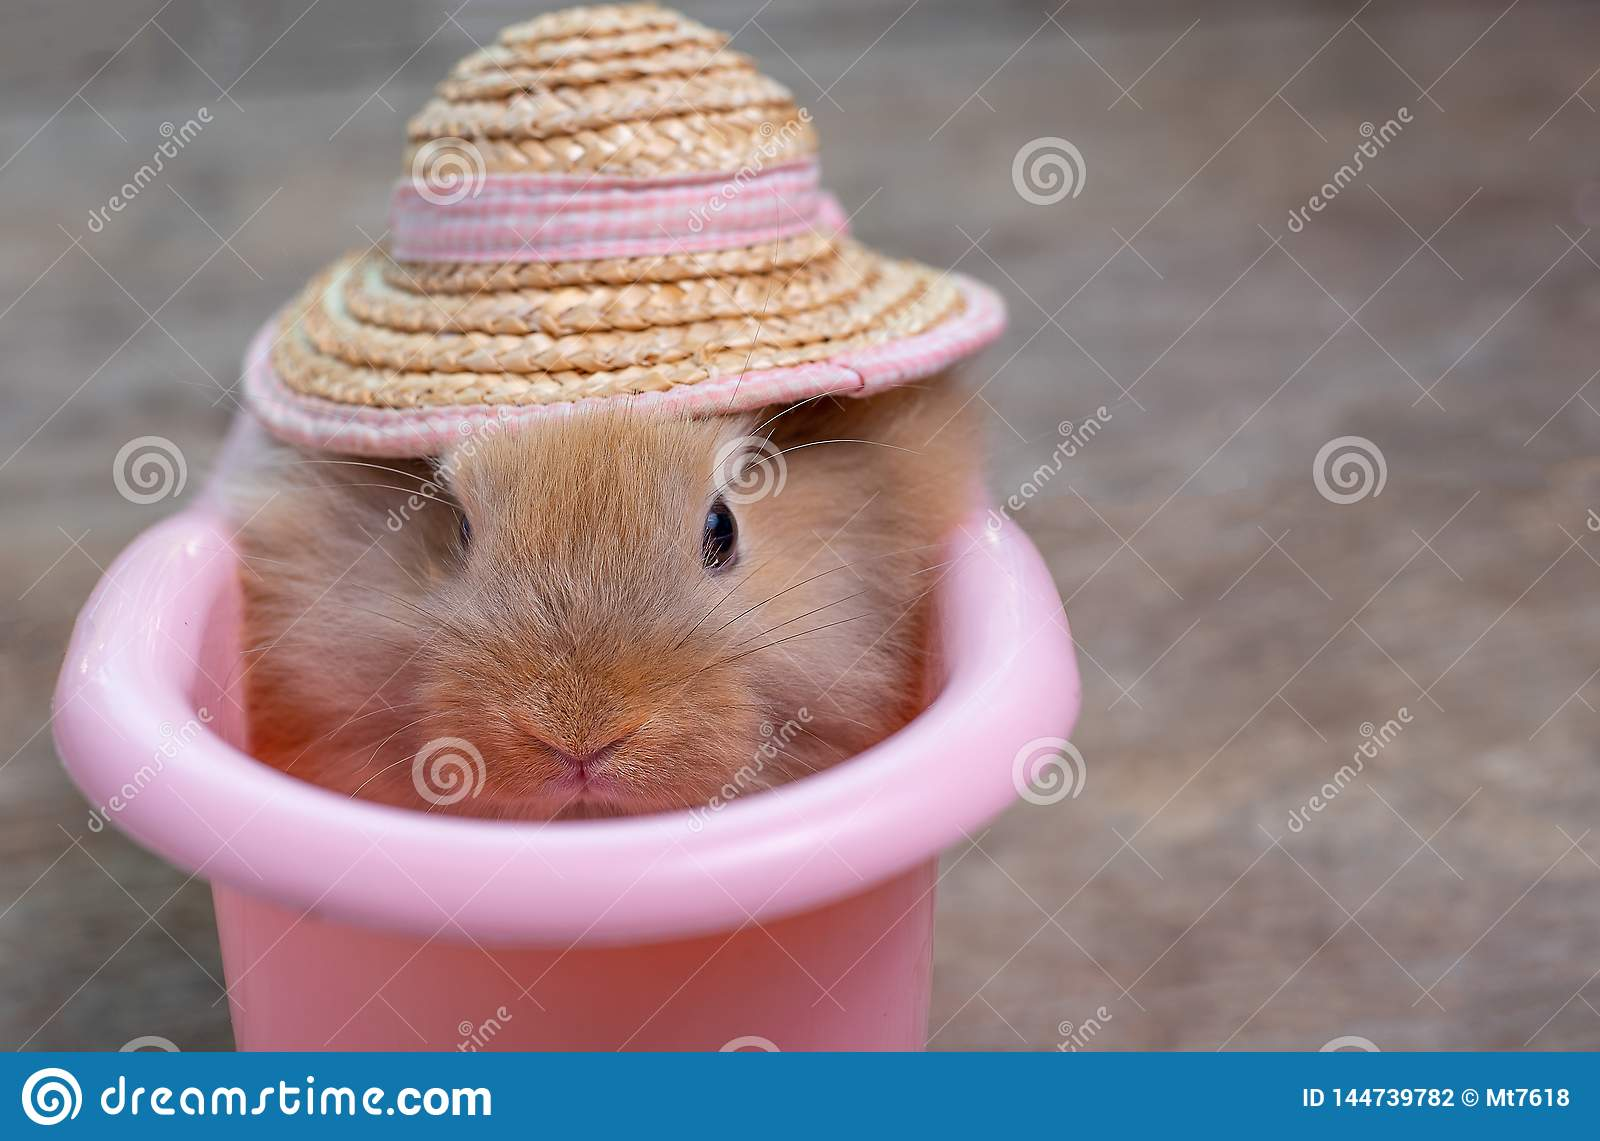 Close up view of cute little light brown bunny rabbit with hat in pink bathtub on wood table